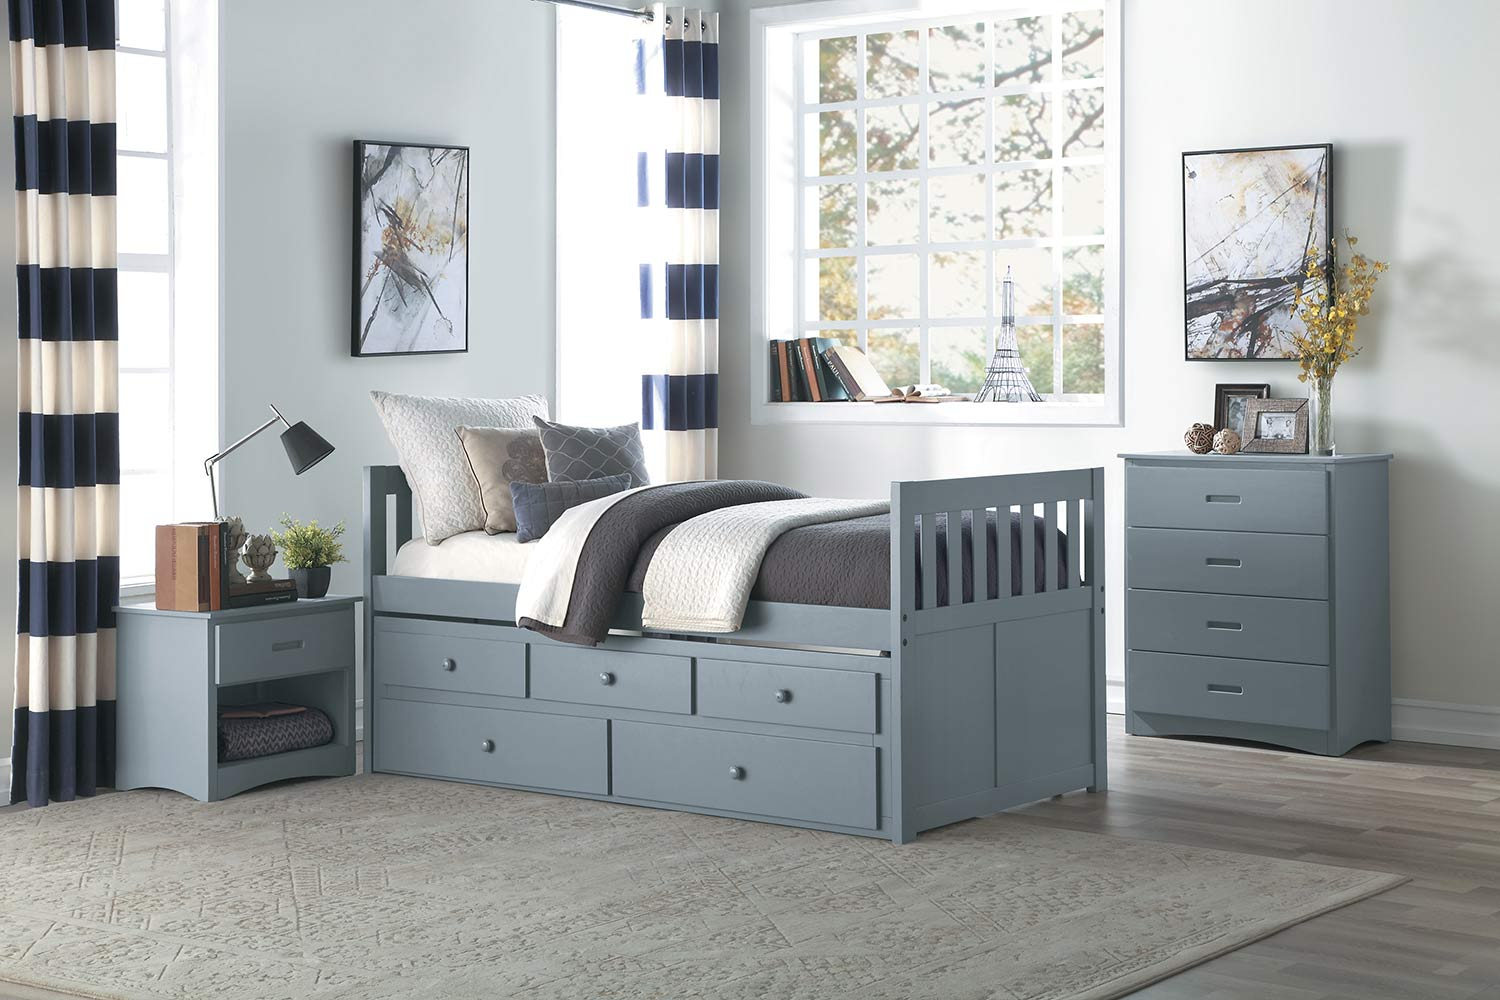 Homelegance Orion Trundle Bedroom Set - Gray